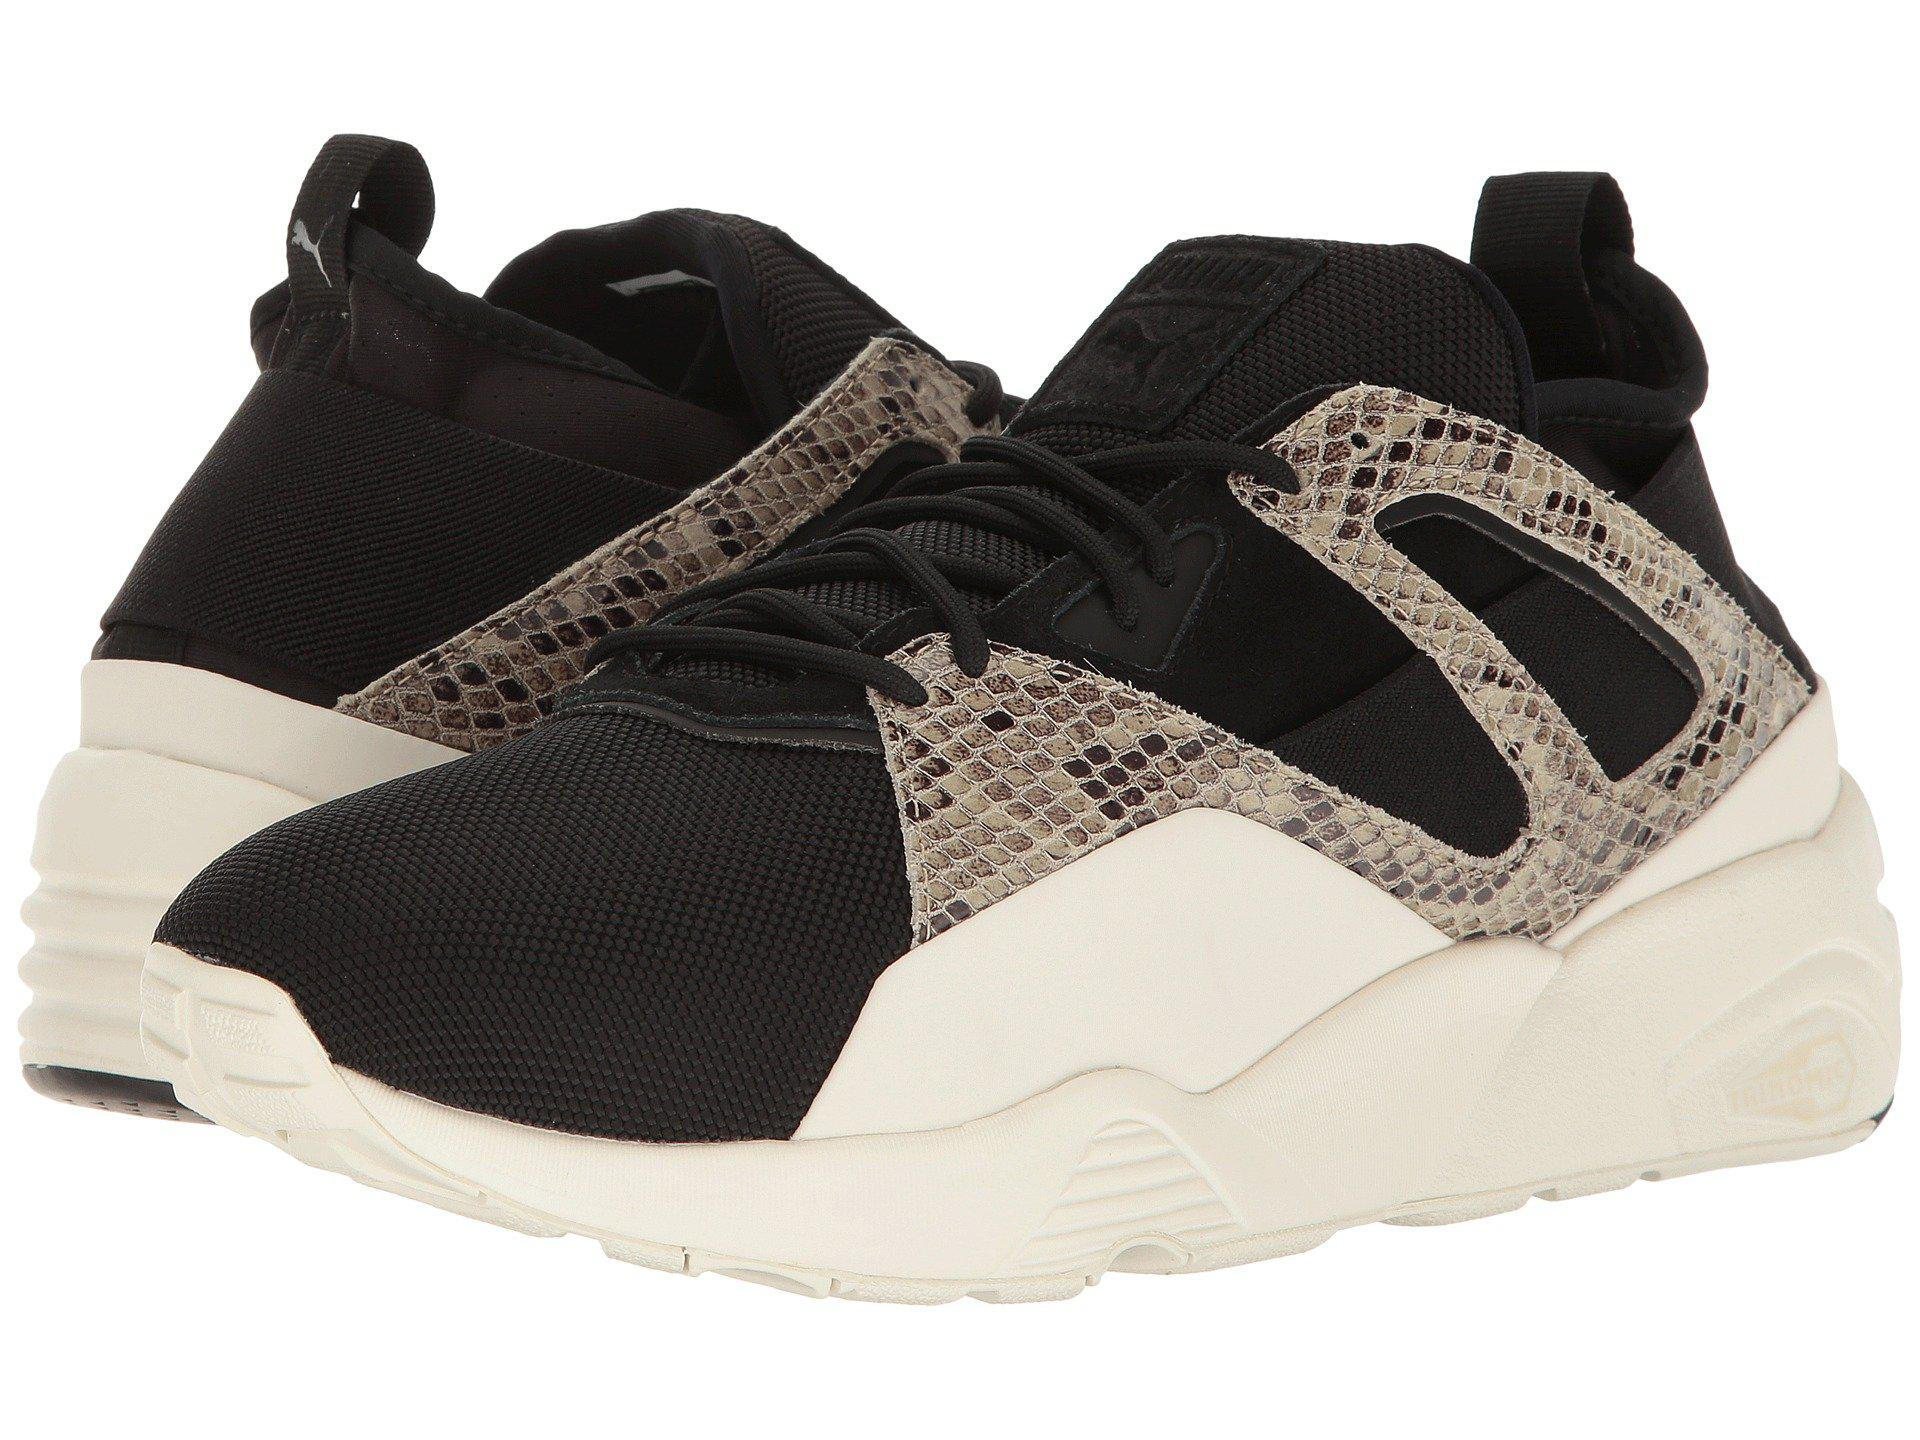 e71b81d2bd44dc Lyst - PUMA B.o.g Sock Snake in Black for Men - Save 22%